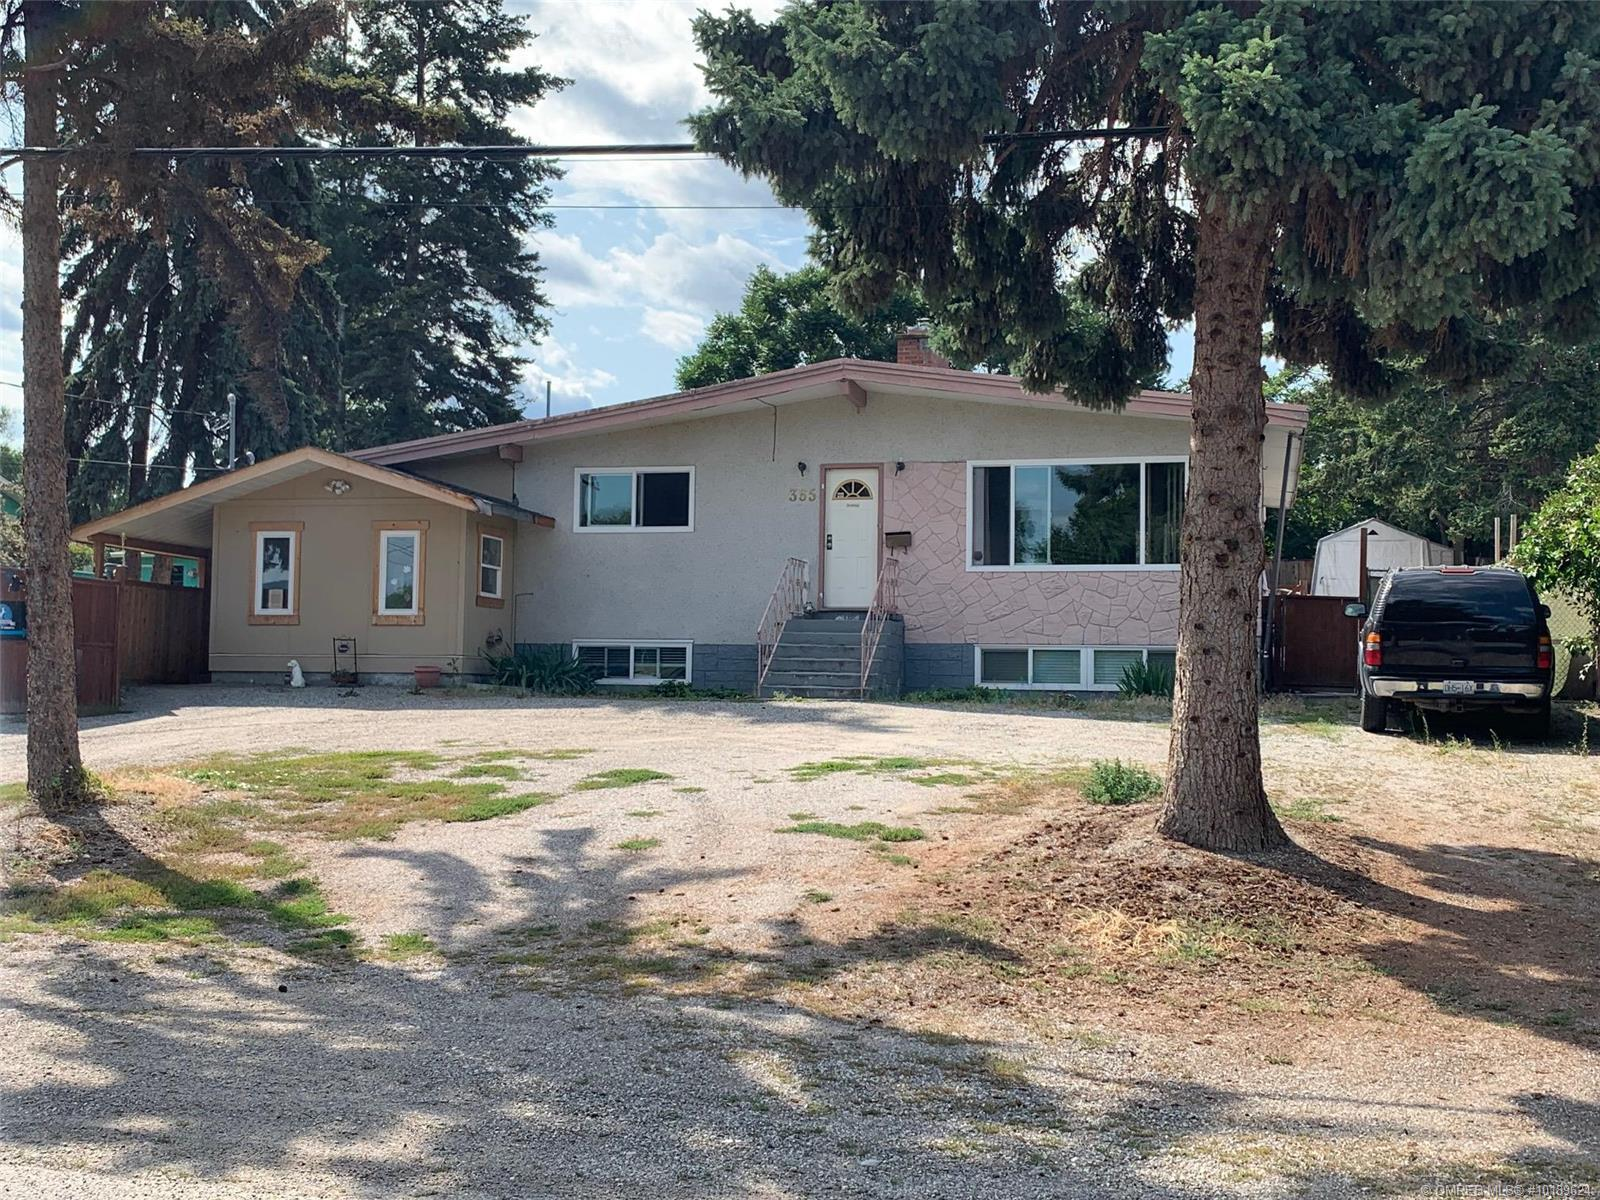 Removed: 365 Clarissa Road, Kelowna, BC - Removed on 2019-09-24 01:12:12